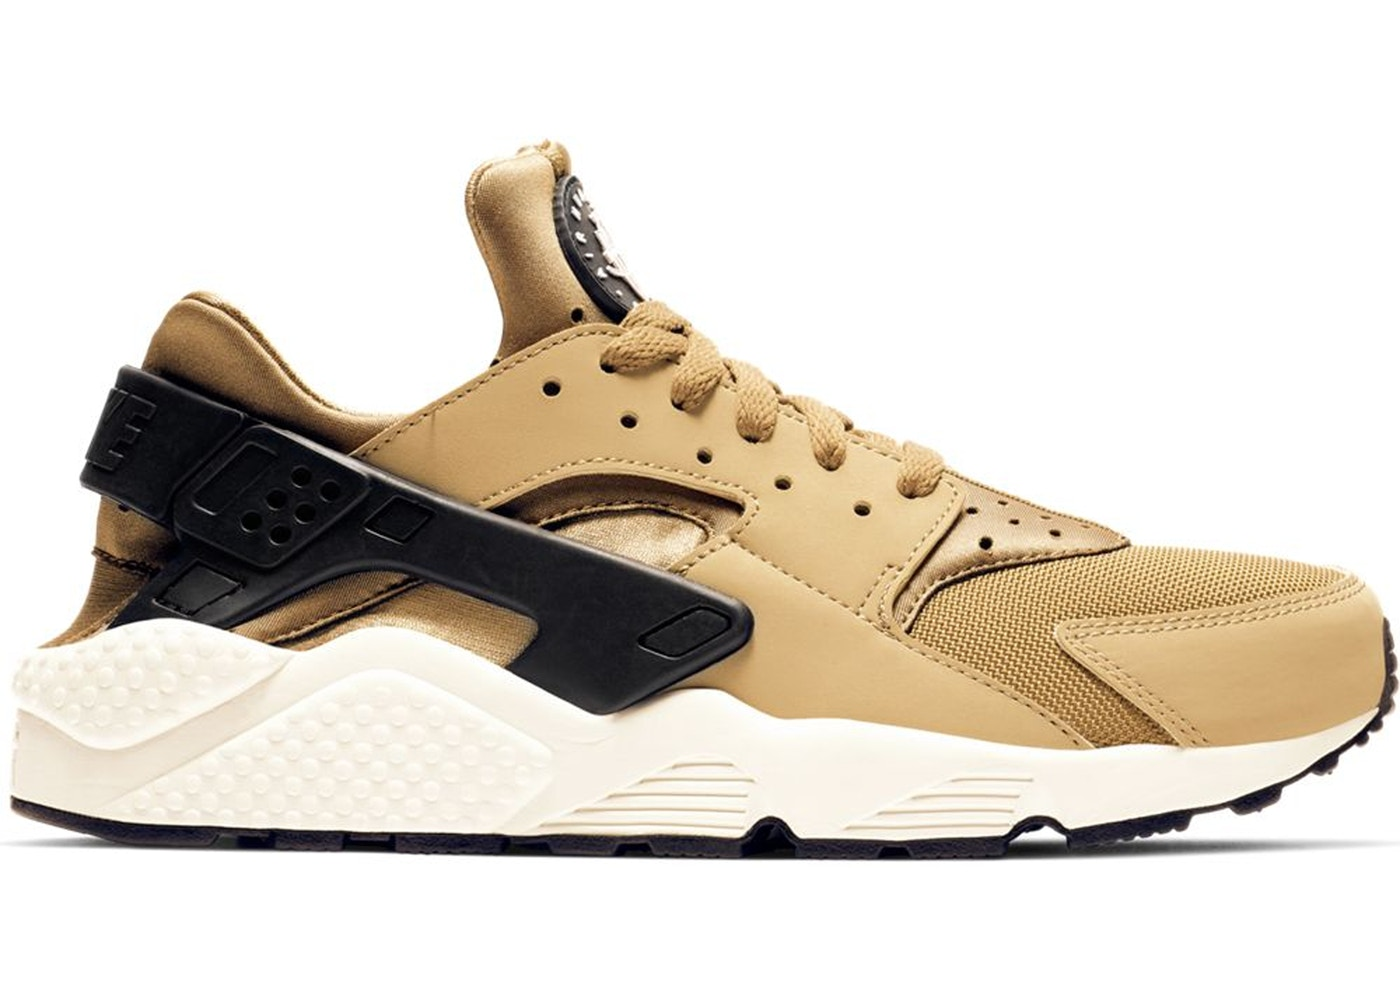 official photos 06eca 6345d Air Huarache Run Golden Beige Parachute Beige